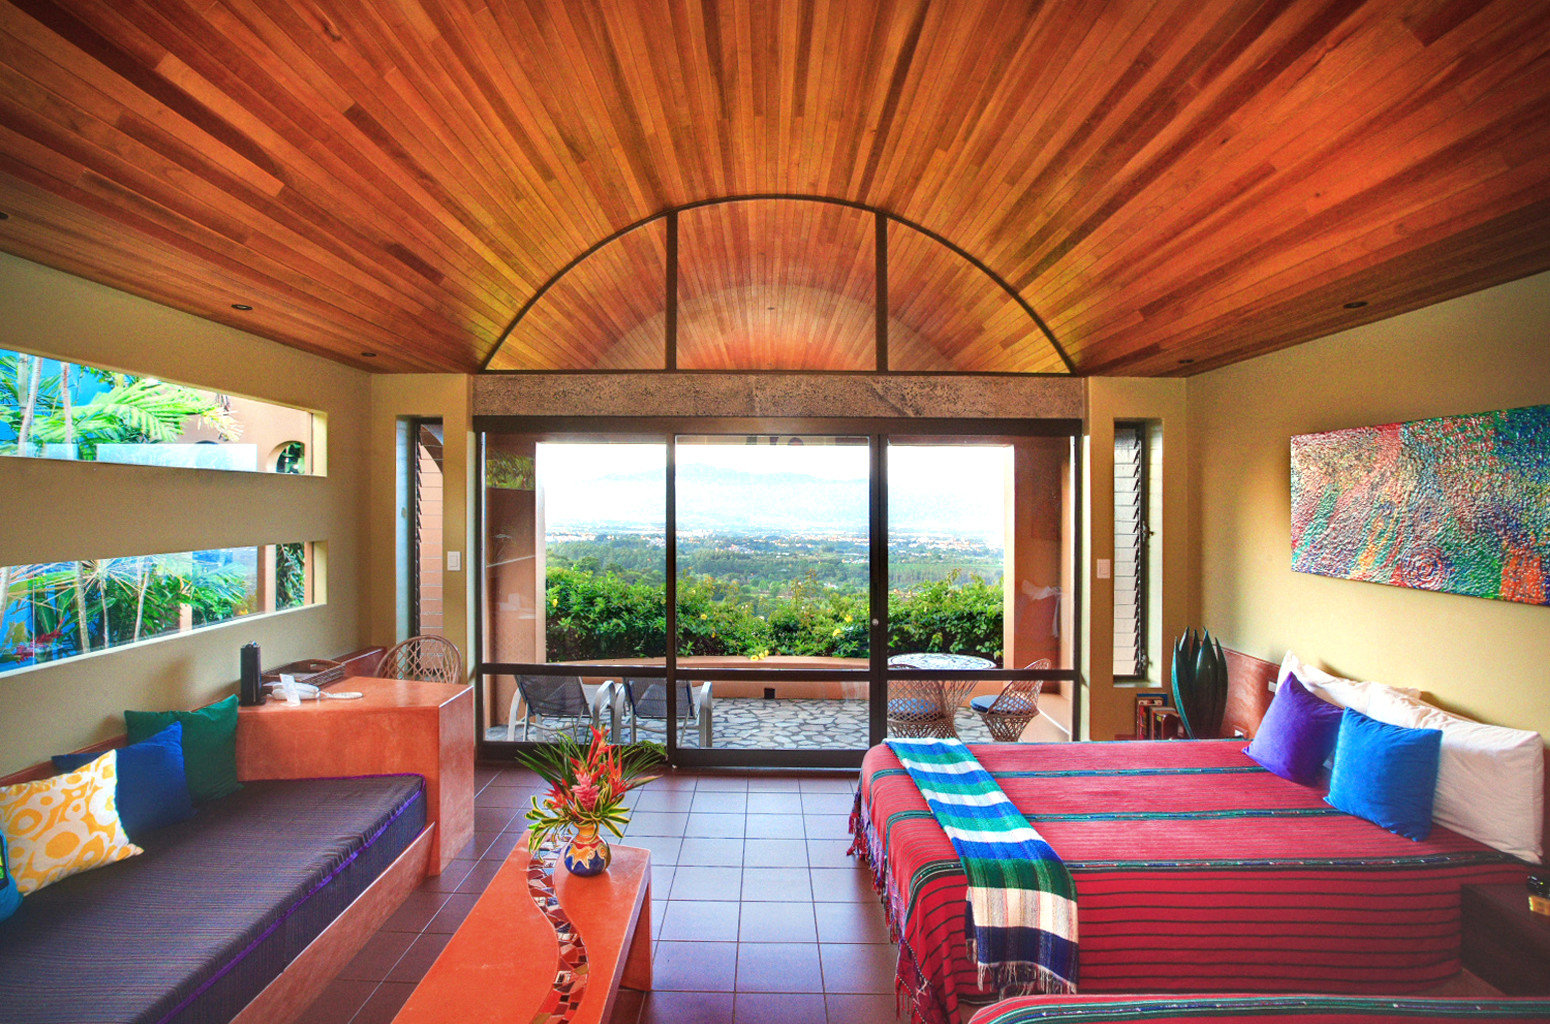 Bedroom Outdoors Patio Scenic views Suite Wellness property Resort living room home Villa cottage colorful bright